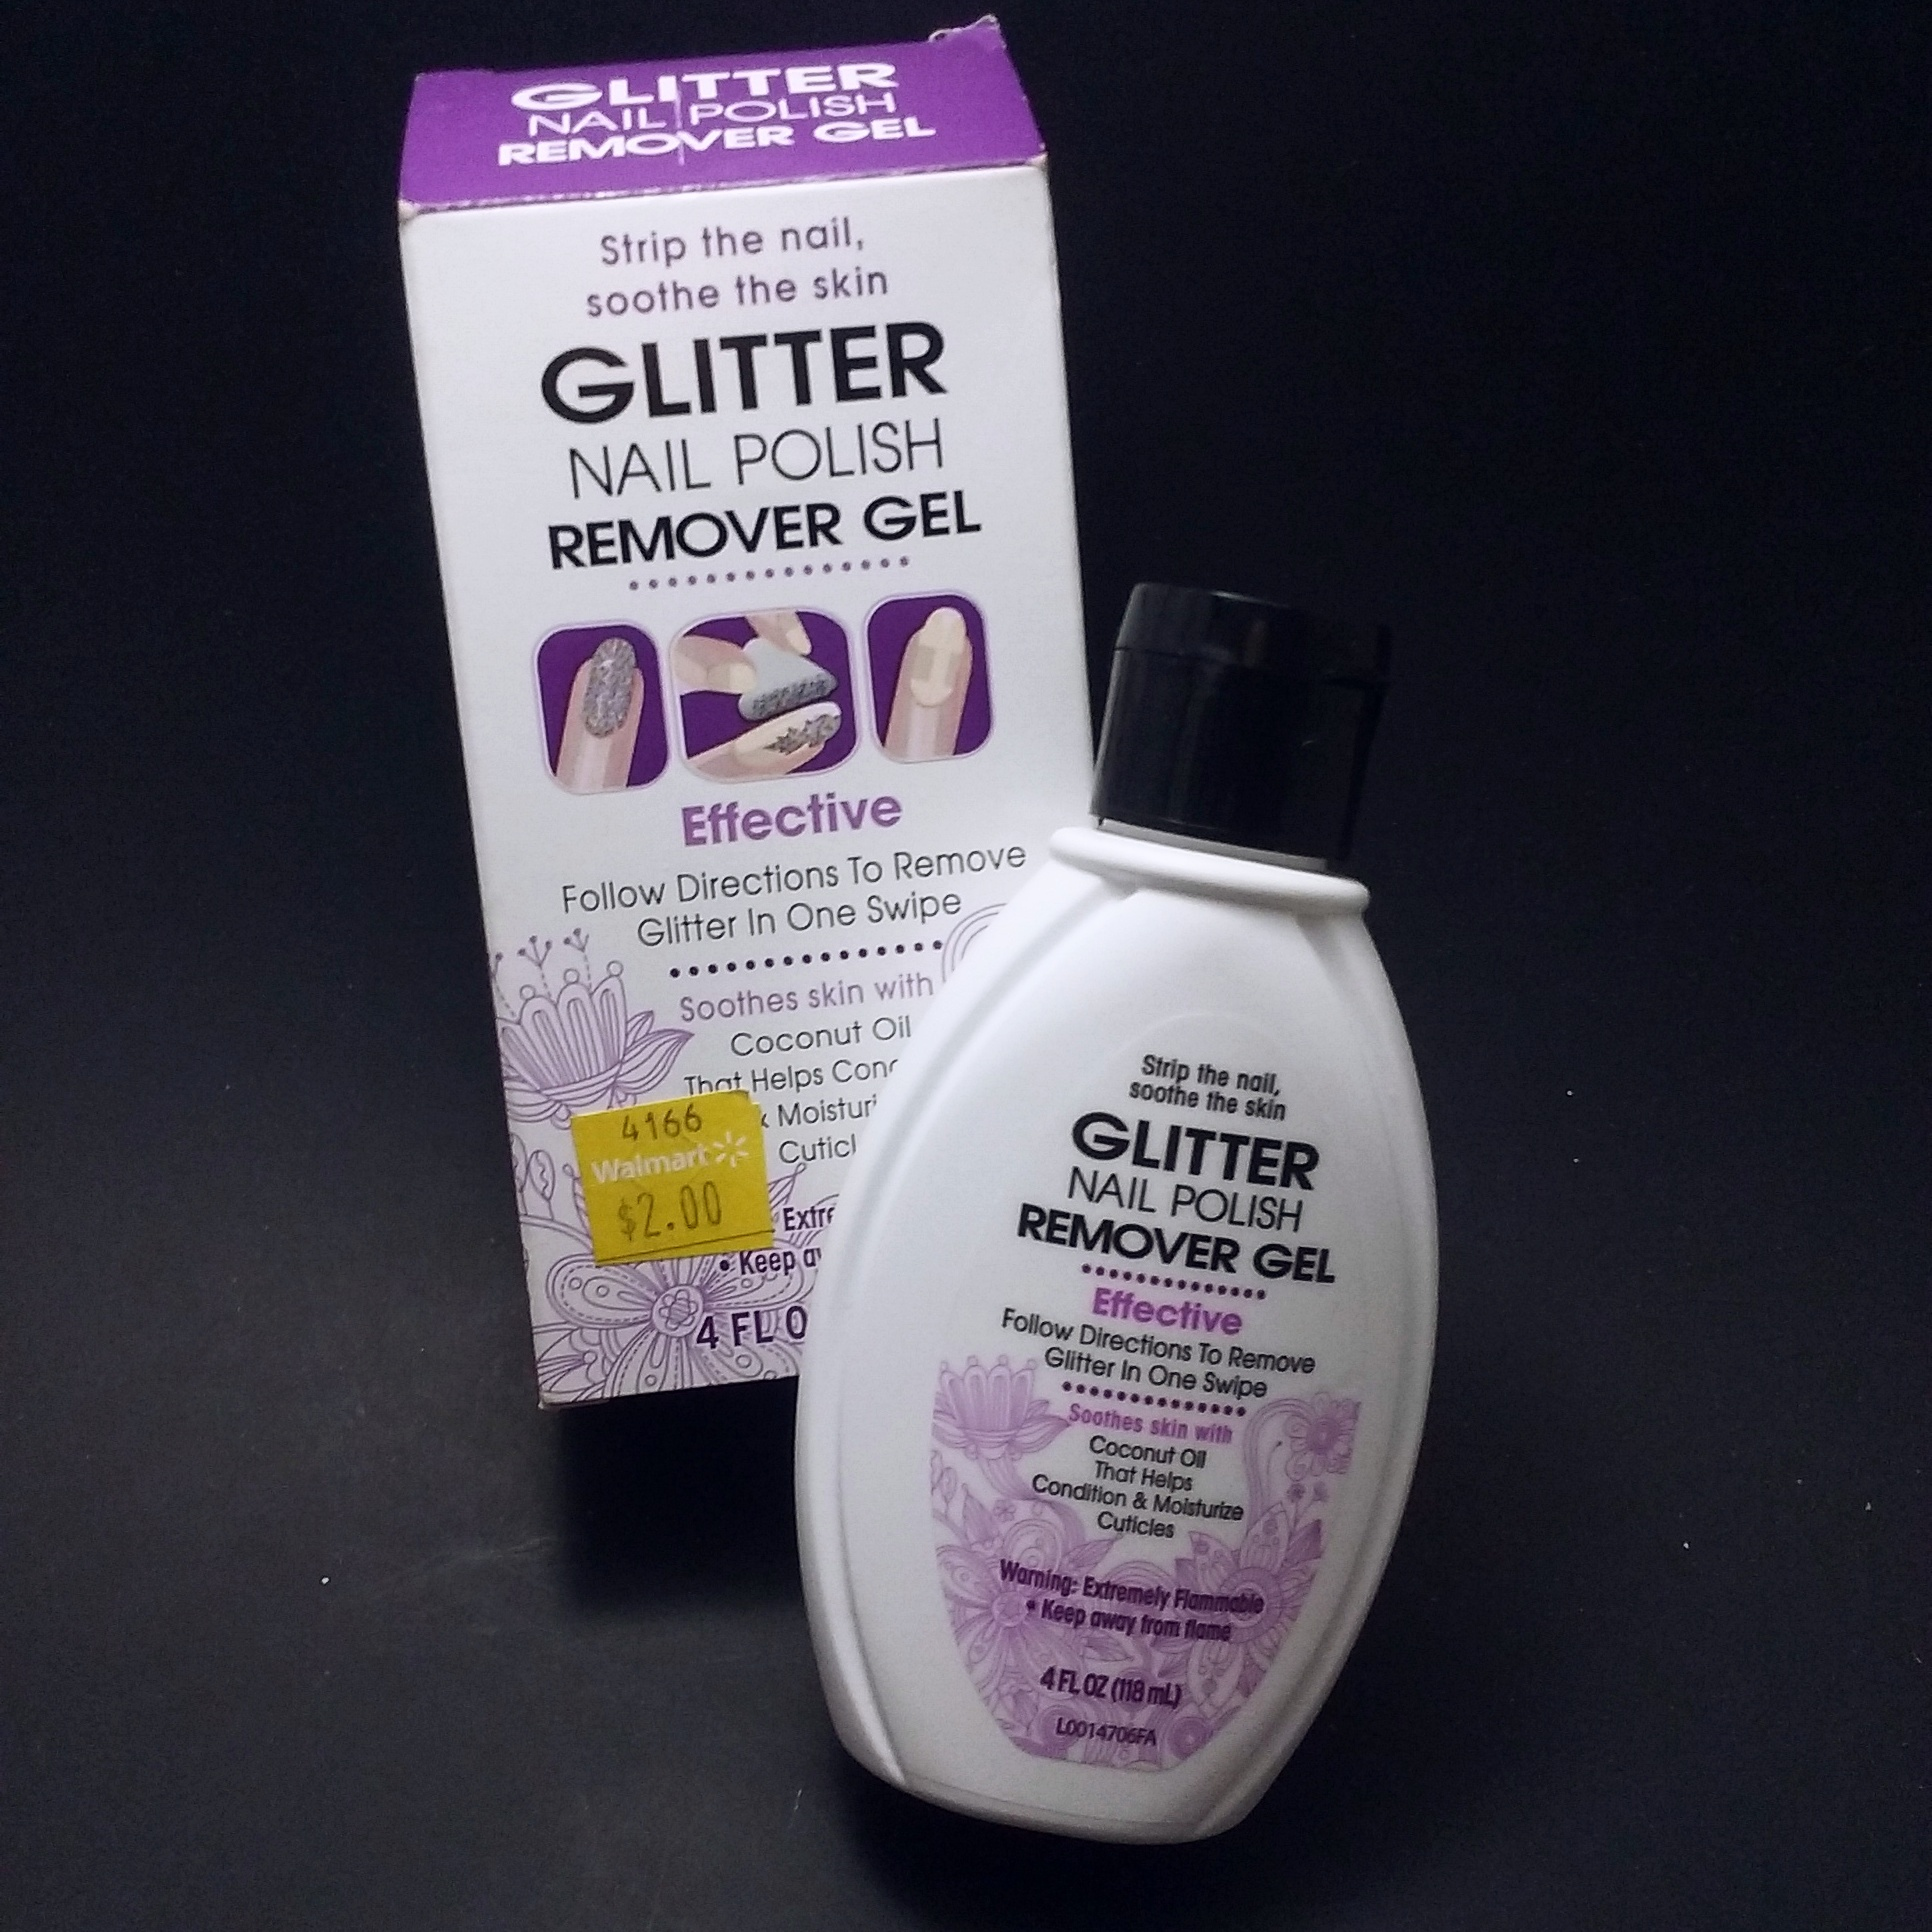 Nail Polish Remover That Works: Glitter Nail Polish Remover Gel Review